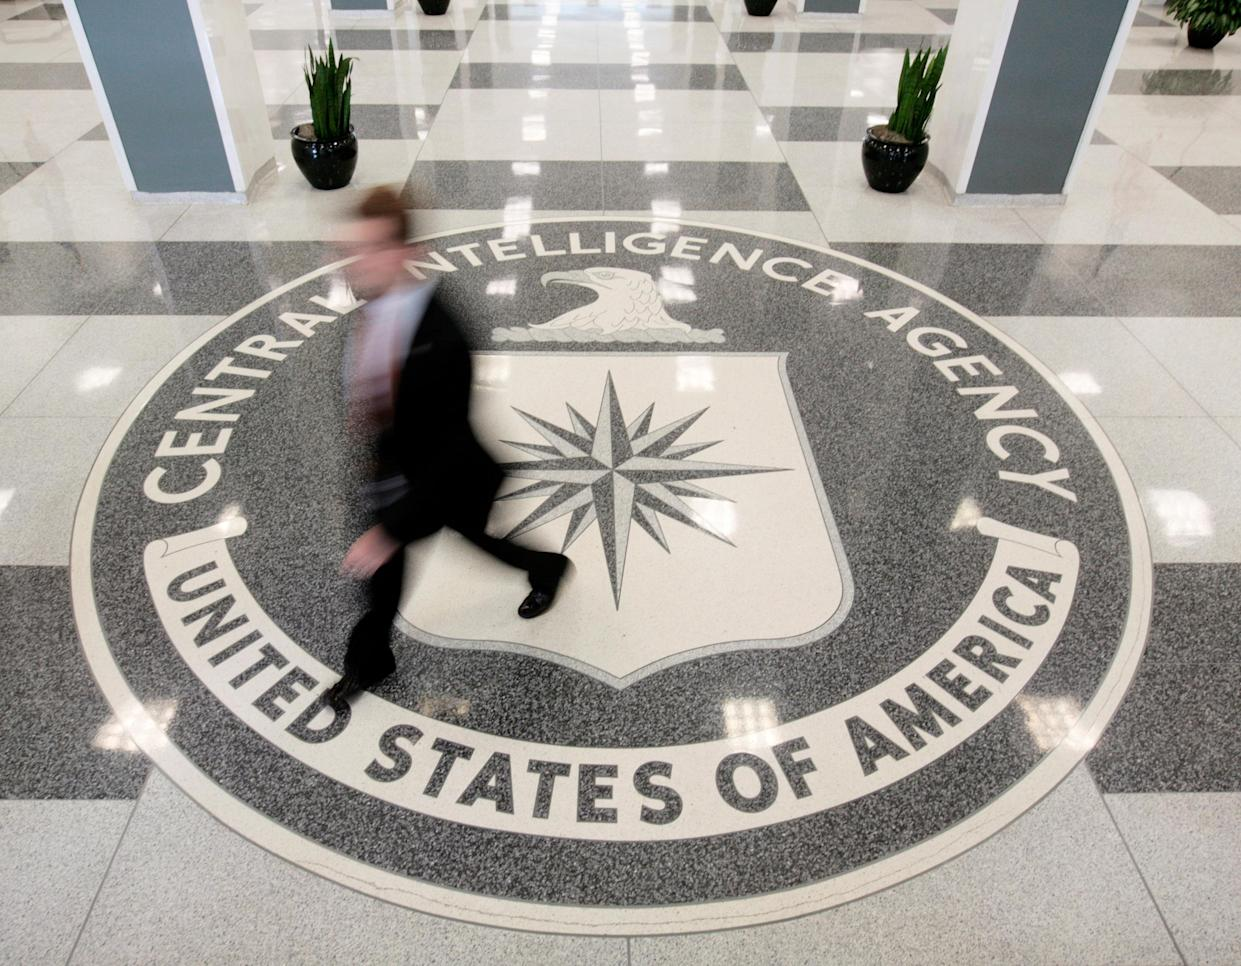 The lobby of CIA headquarters in Langley, Va. (Photo: Larry Downing/Reuters)